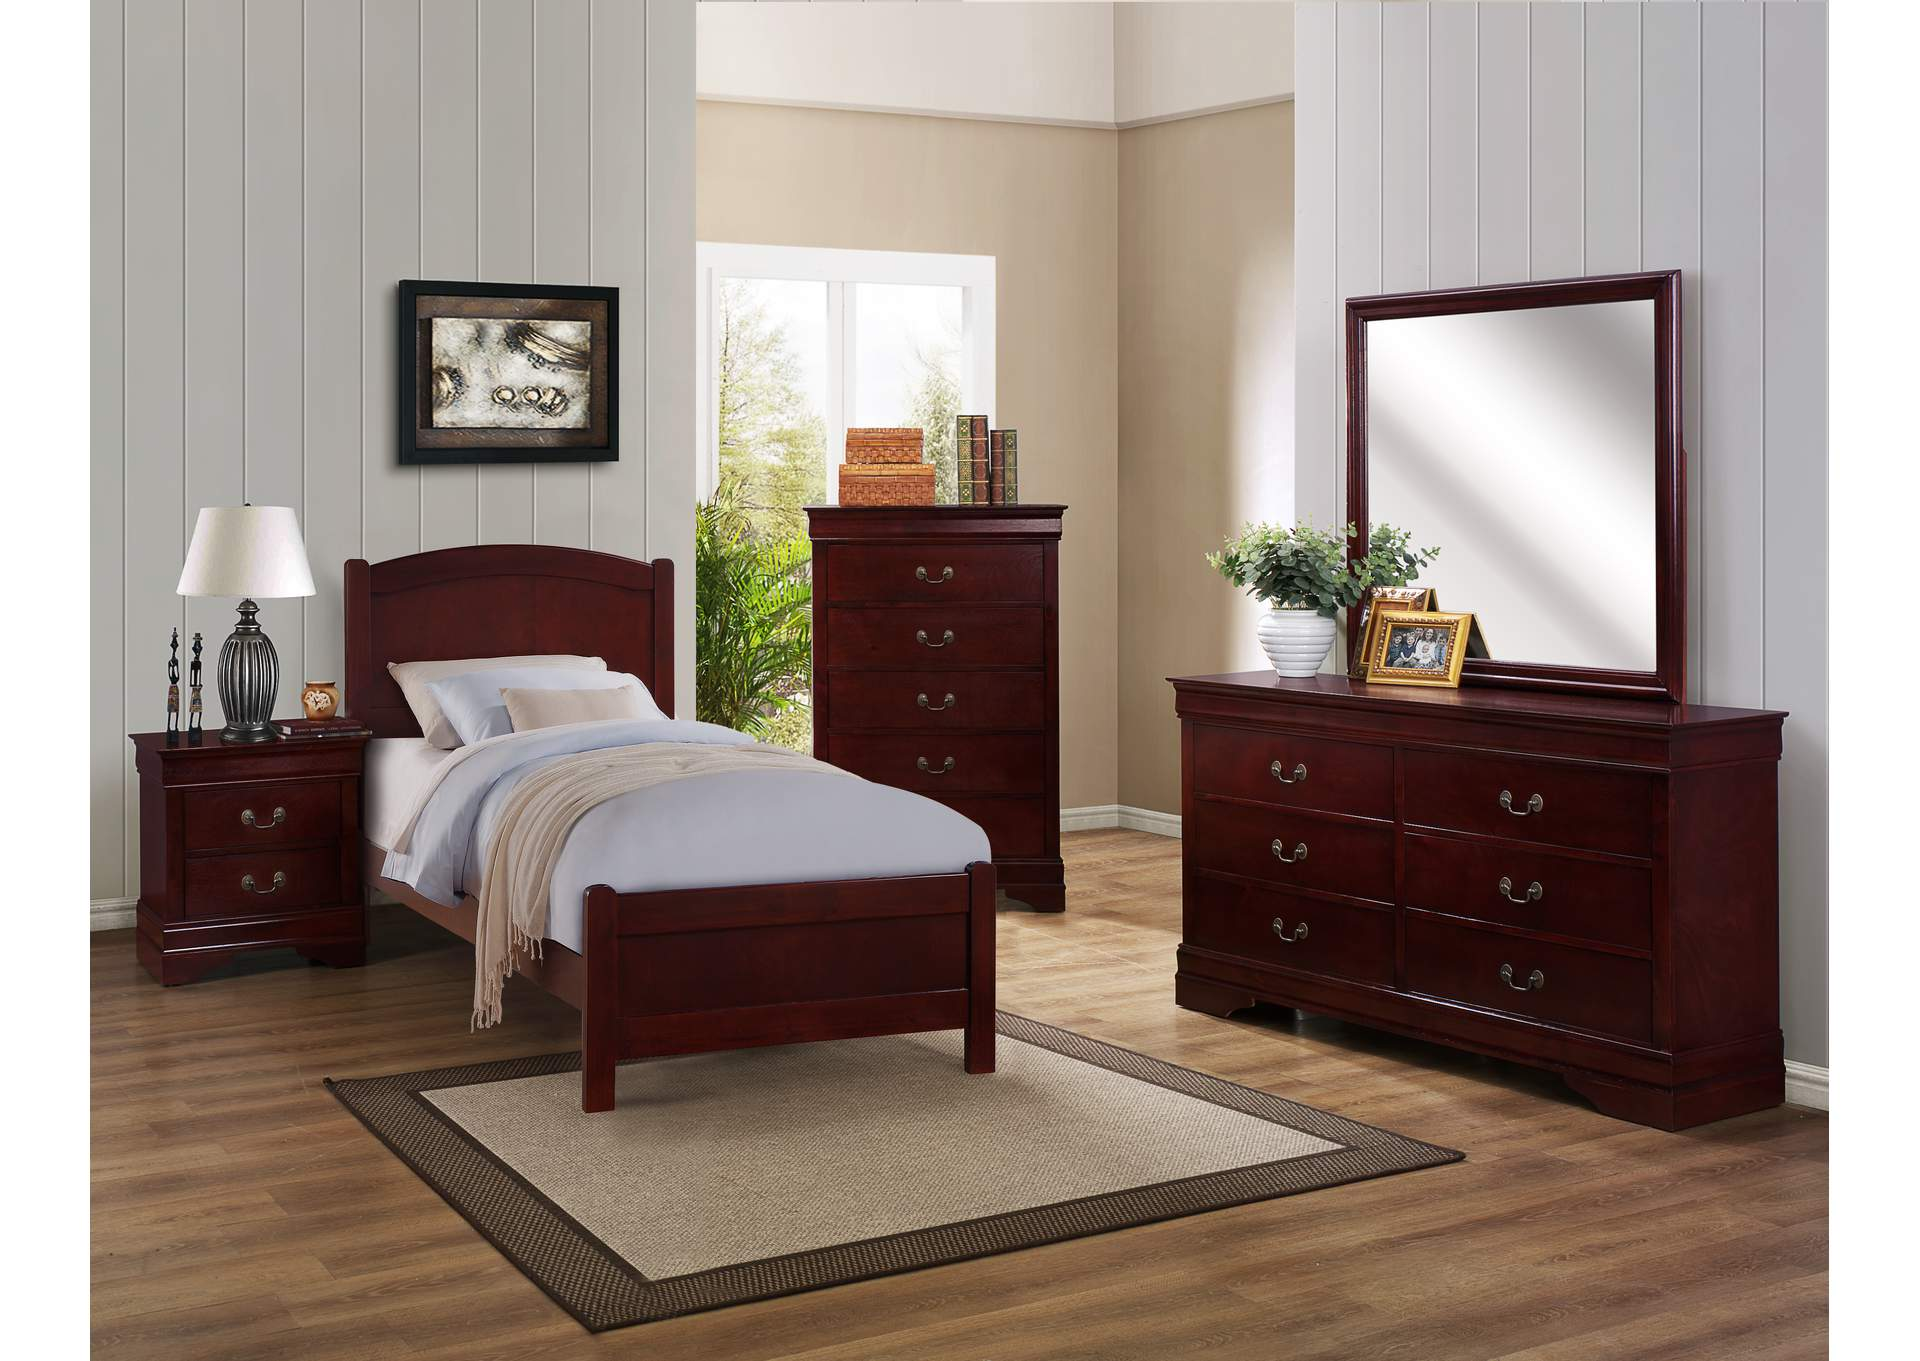 Helene Cherry Twin Panel Bed w/Dresser and Mirror,Crown Mark